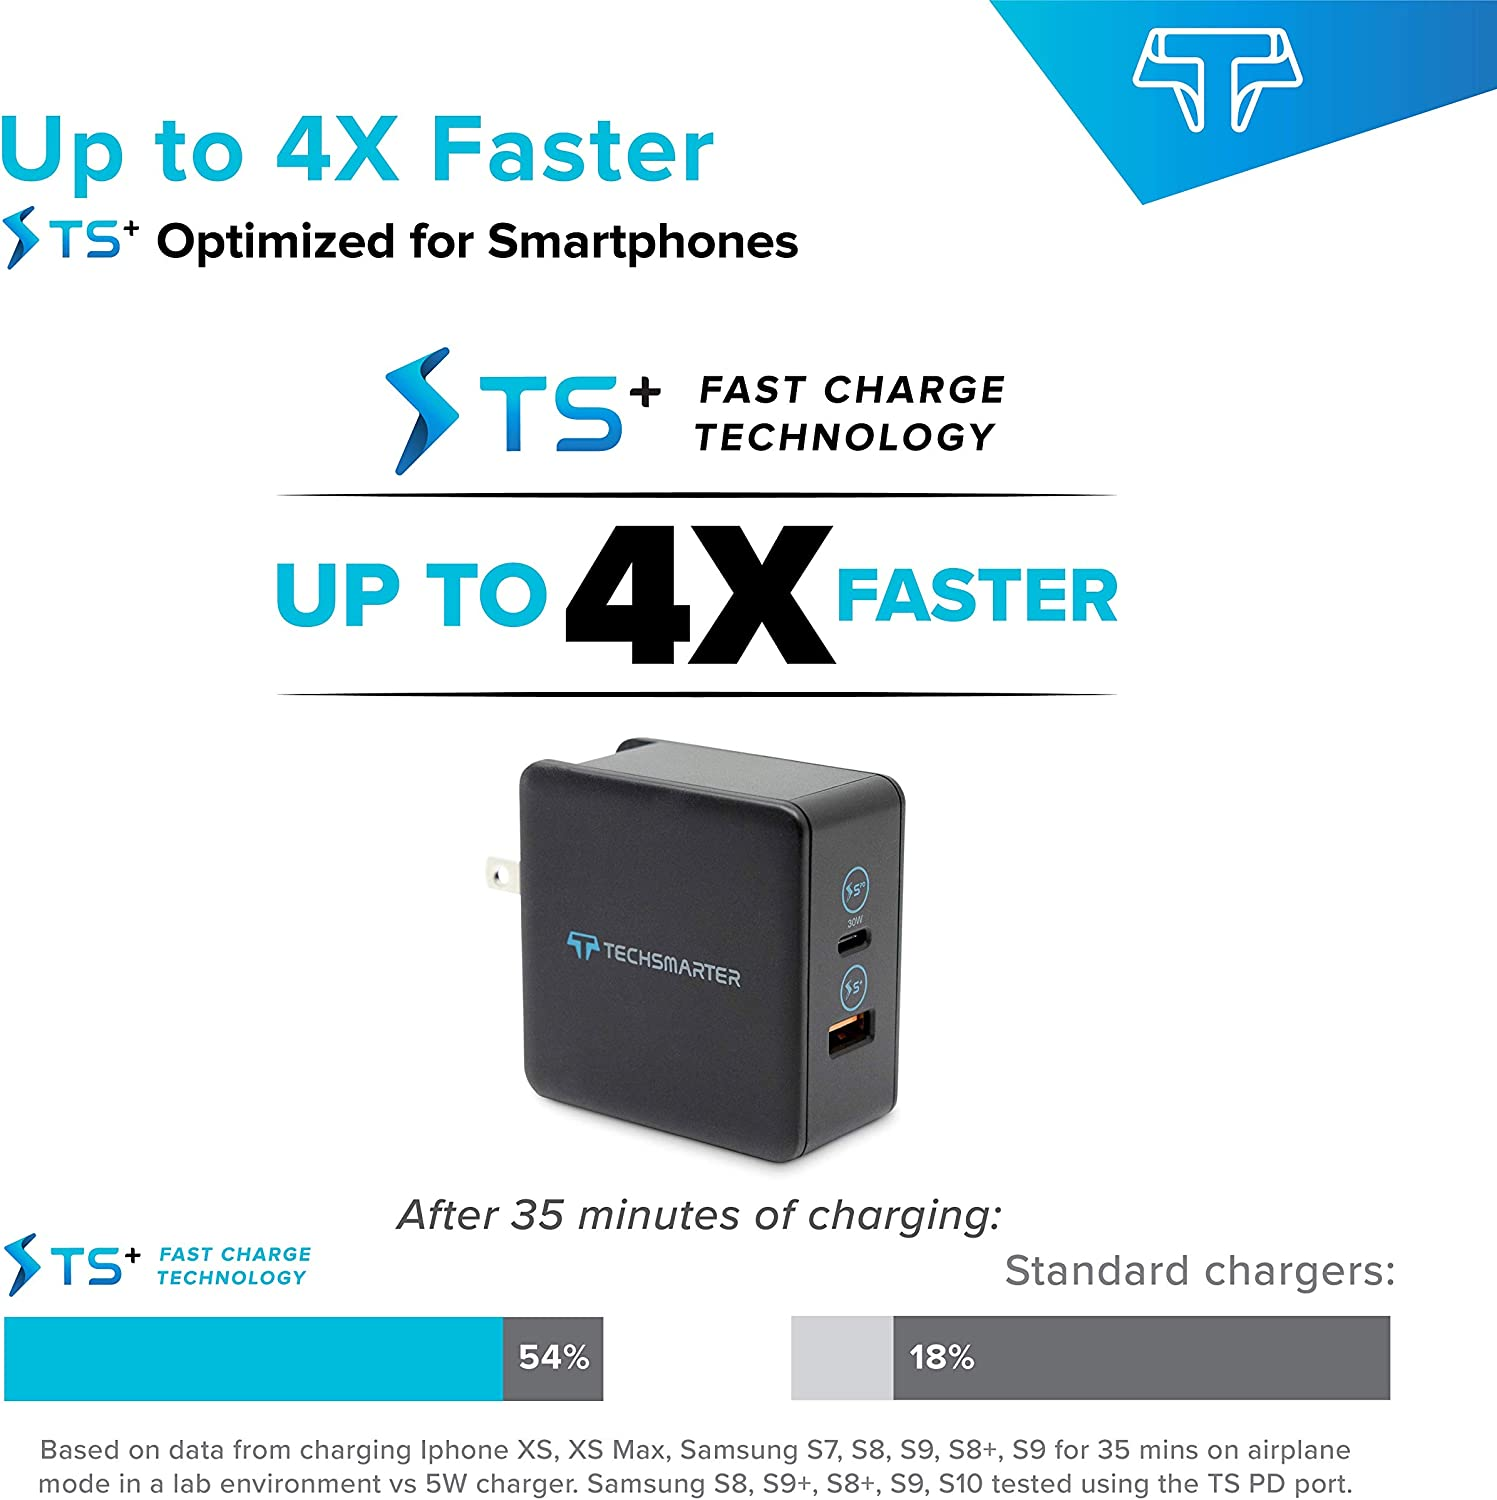 S8 XS X Compatible iPhone 11 8 Android Phones S10 Techsmarter USB-C PD Wall Charger with 30W Power Delivery and 18W USB Ports S7 Note 8,9,10 Samsung S20 S9 MacBook iPad XR